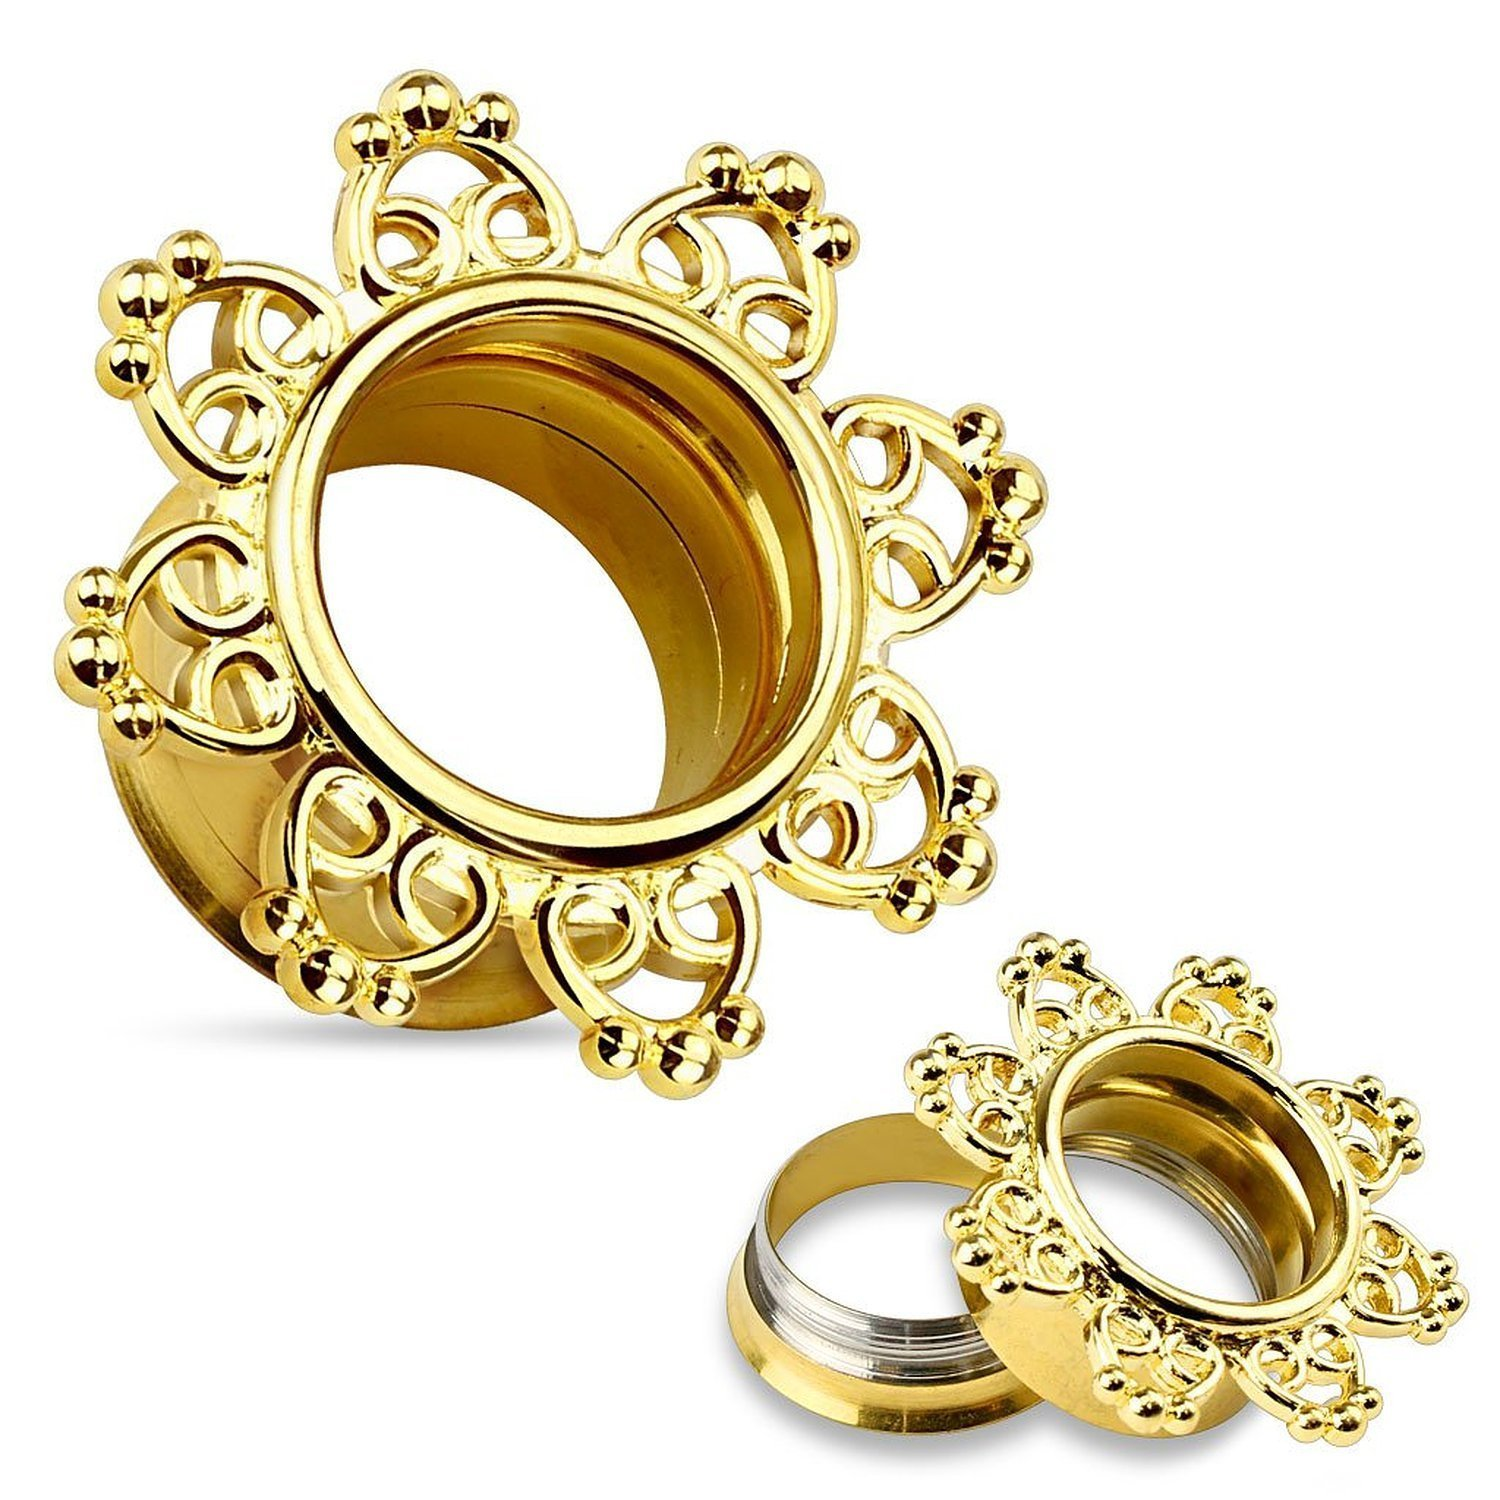 14Kt Gold Plated Tribal Hearts Filigree 316L Surgical Steel Internally Threaded Double Flared Tunnels - Sold as Pairs (1/2'')